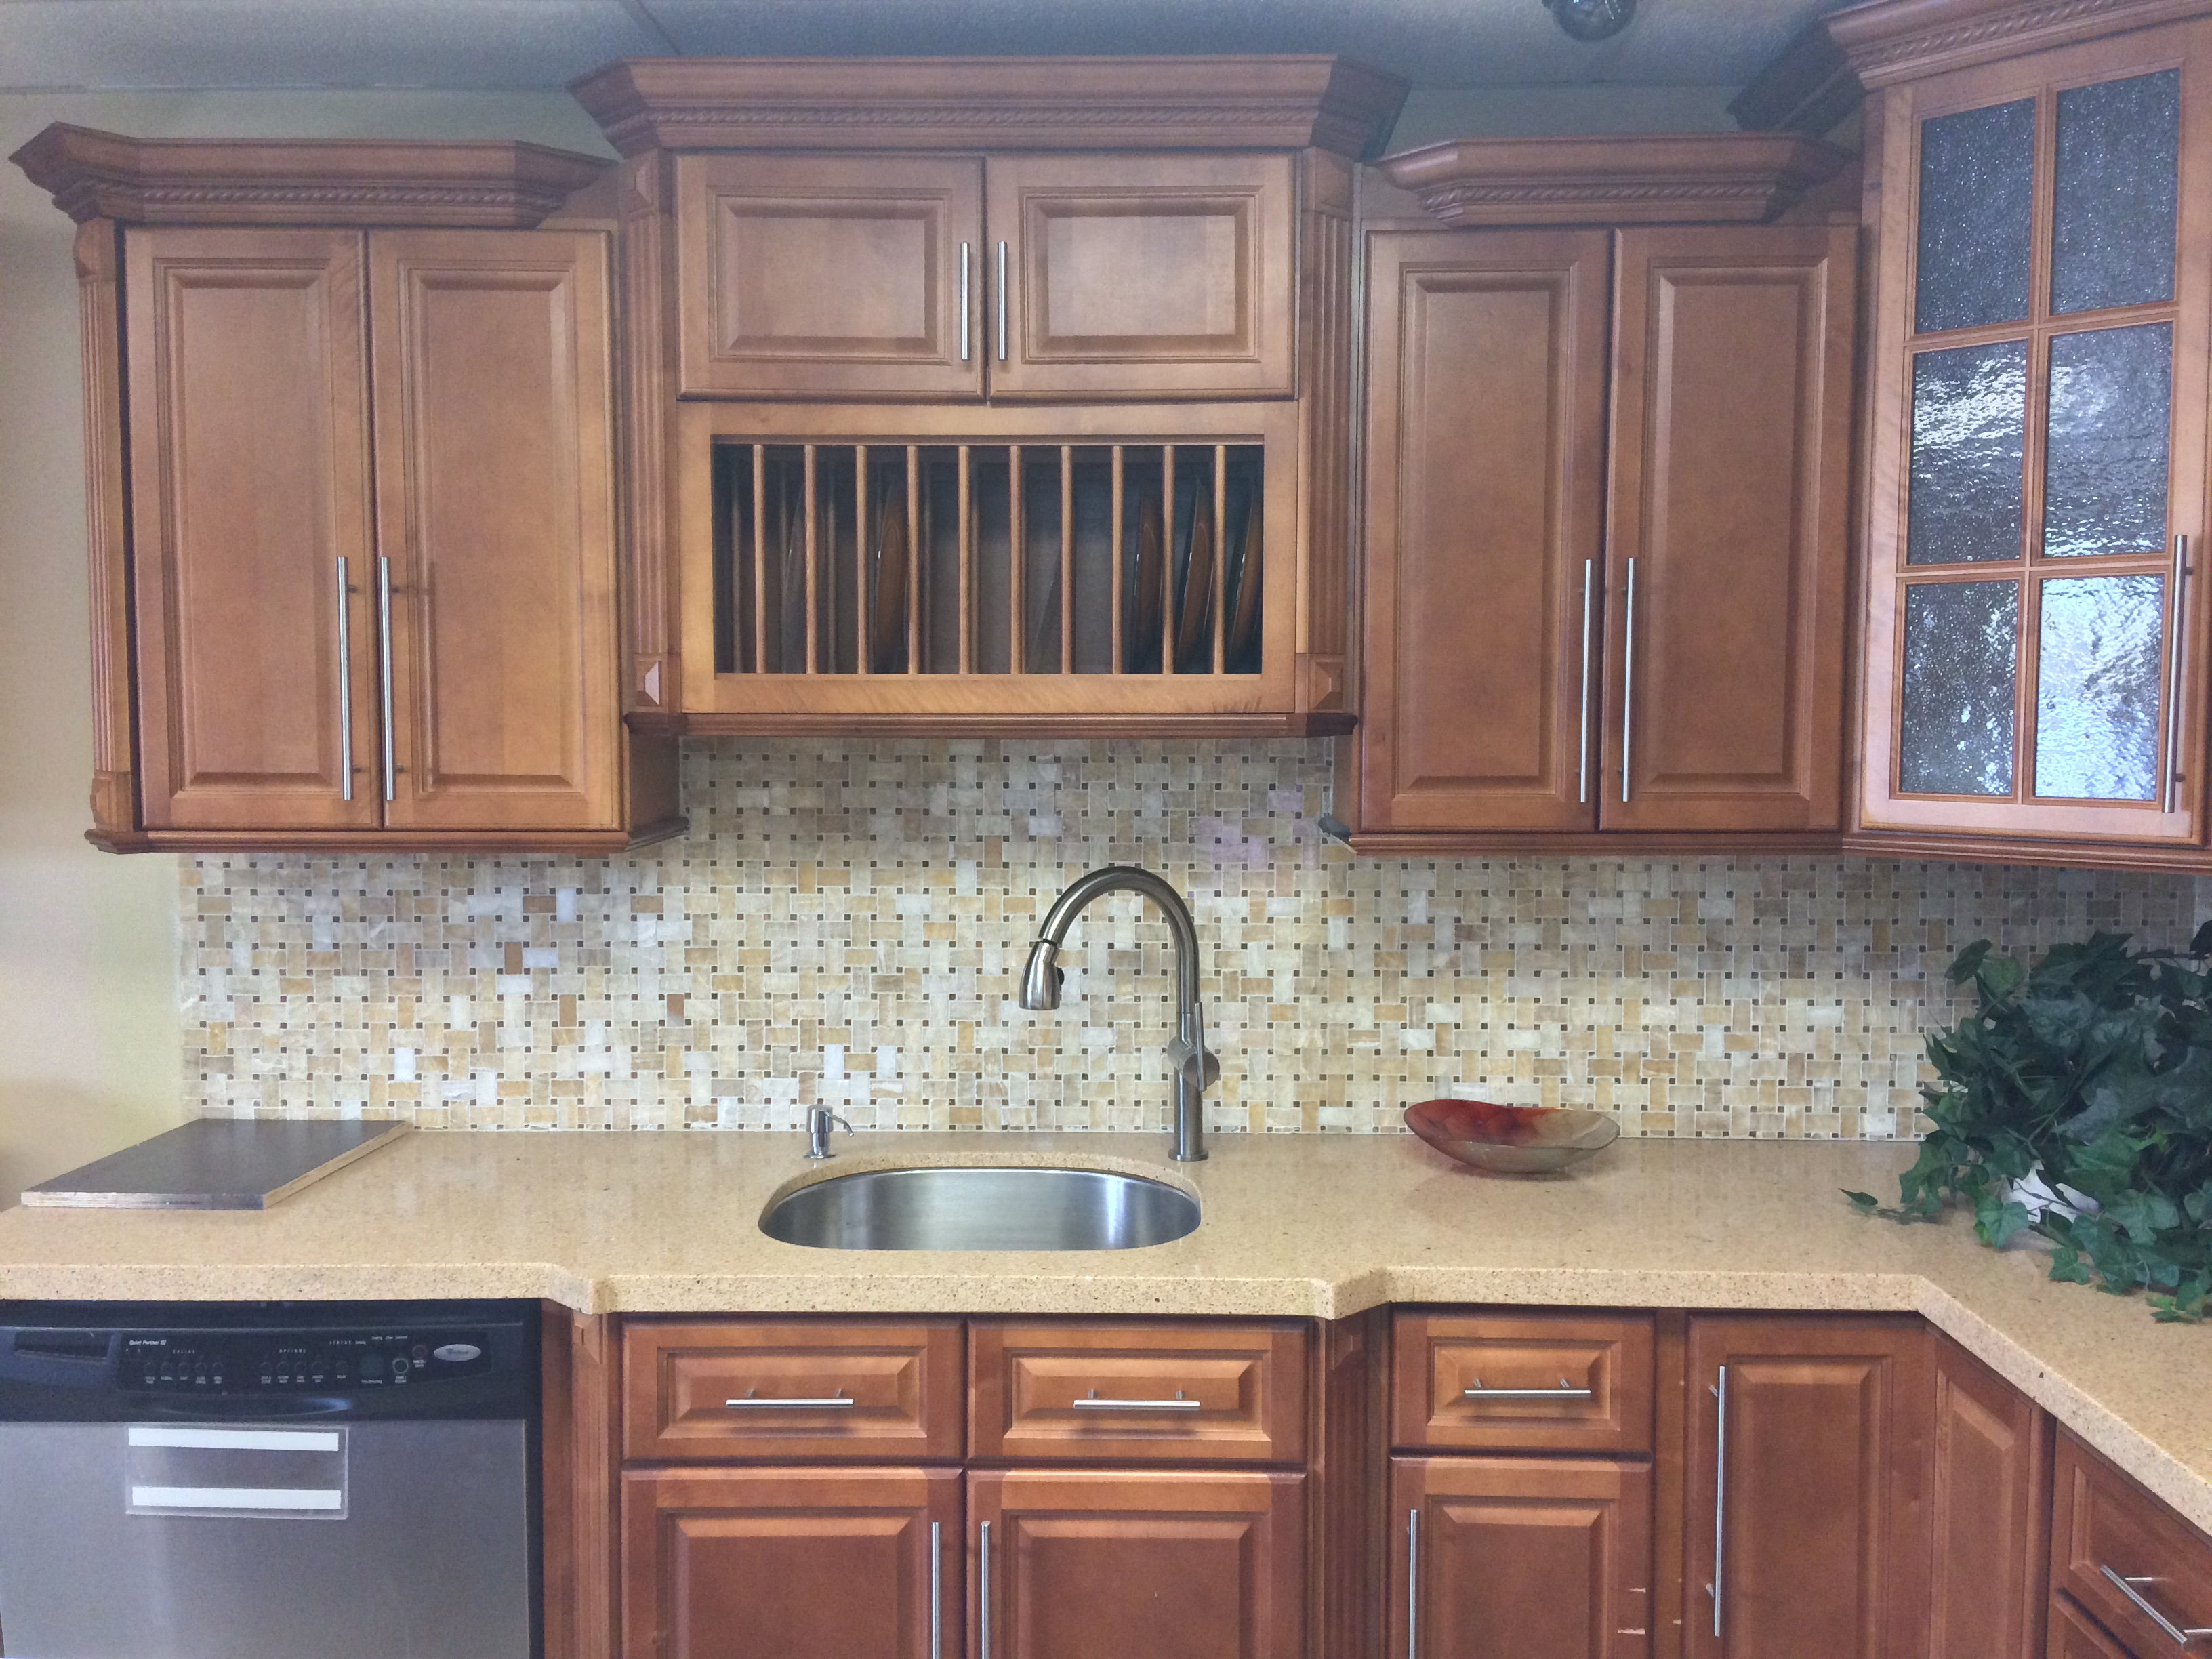 Looking For Kitchens Cabinets On Clearance? 75% Off The